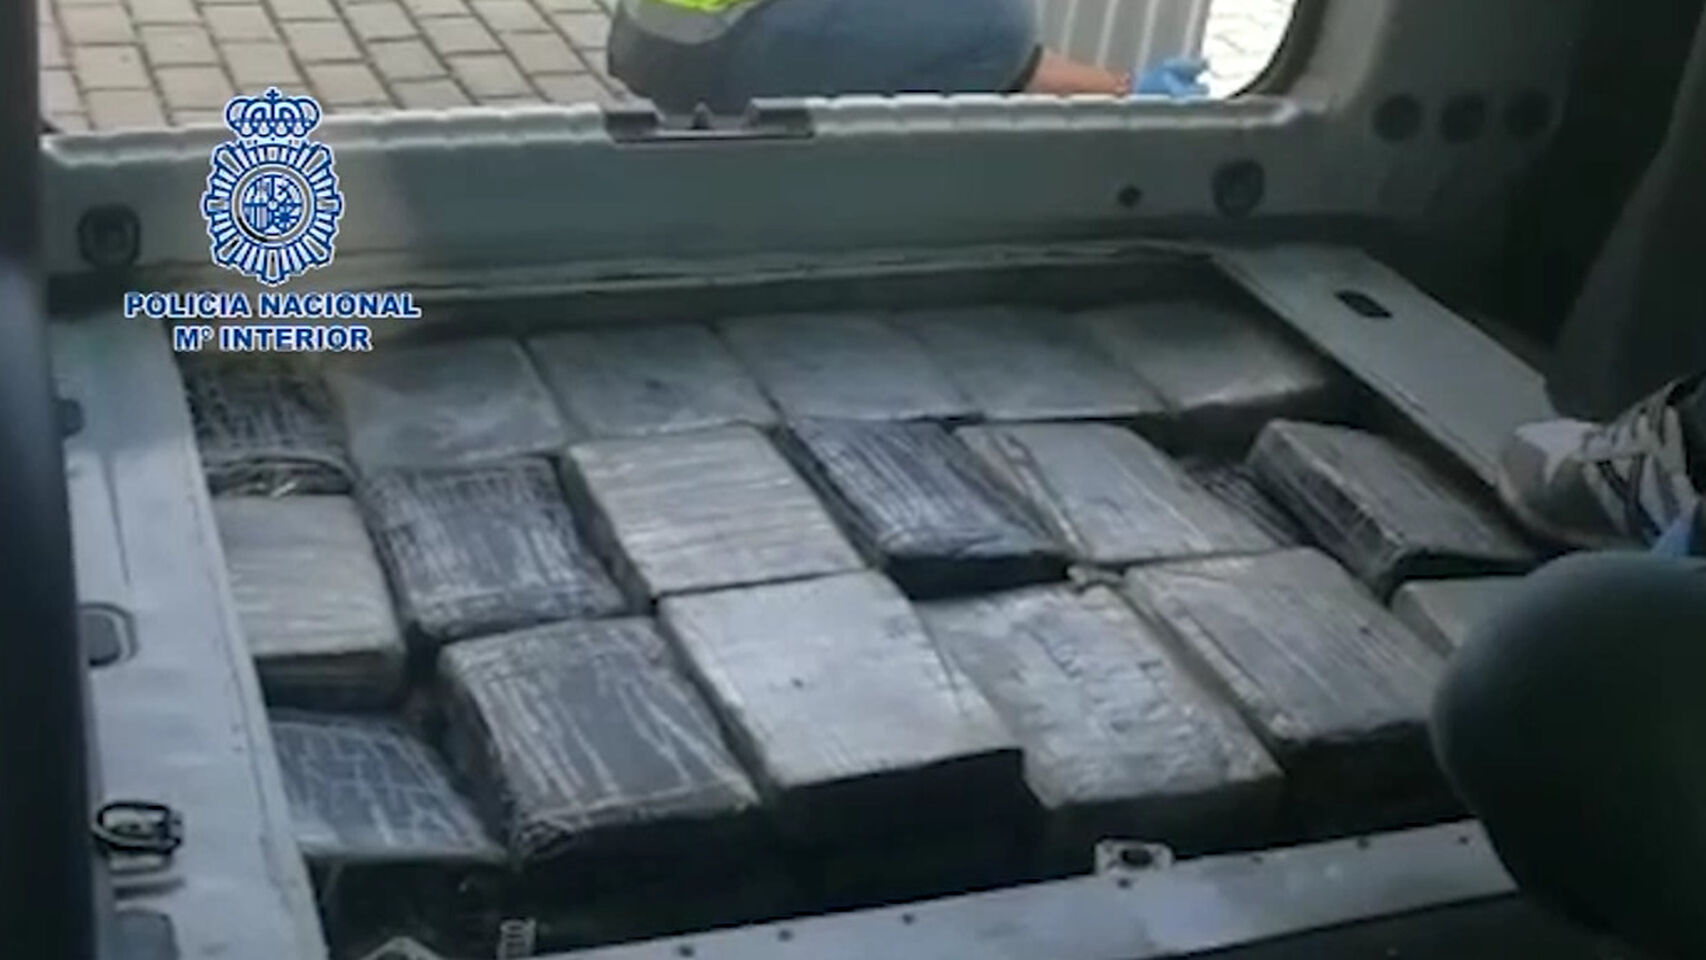 Police Intervene 150 kilos of Cocaine at the Station of Atocha, Madrid Travelling from Colombia